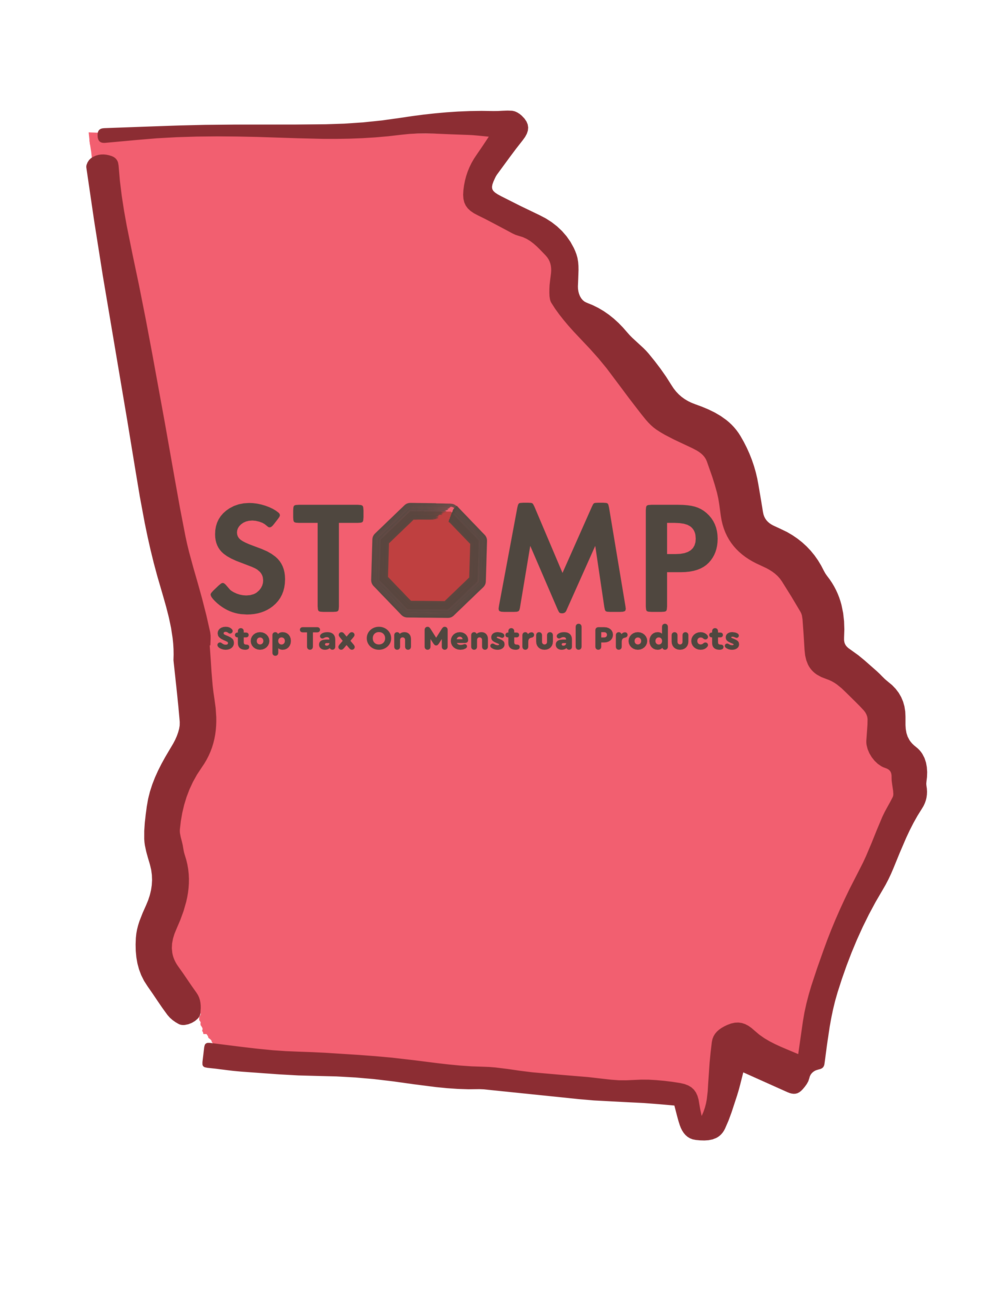 STOMP logo transparent background.png